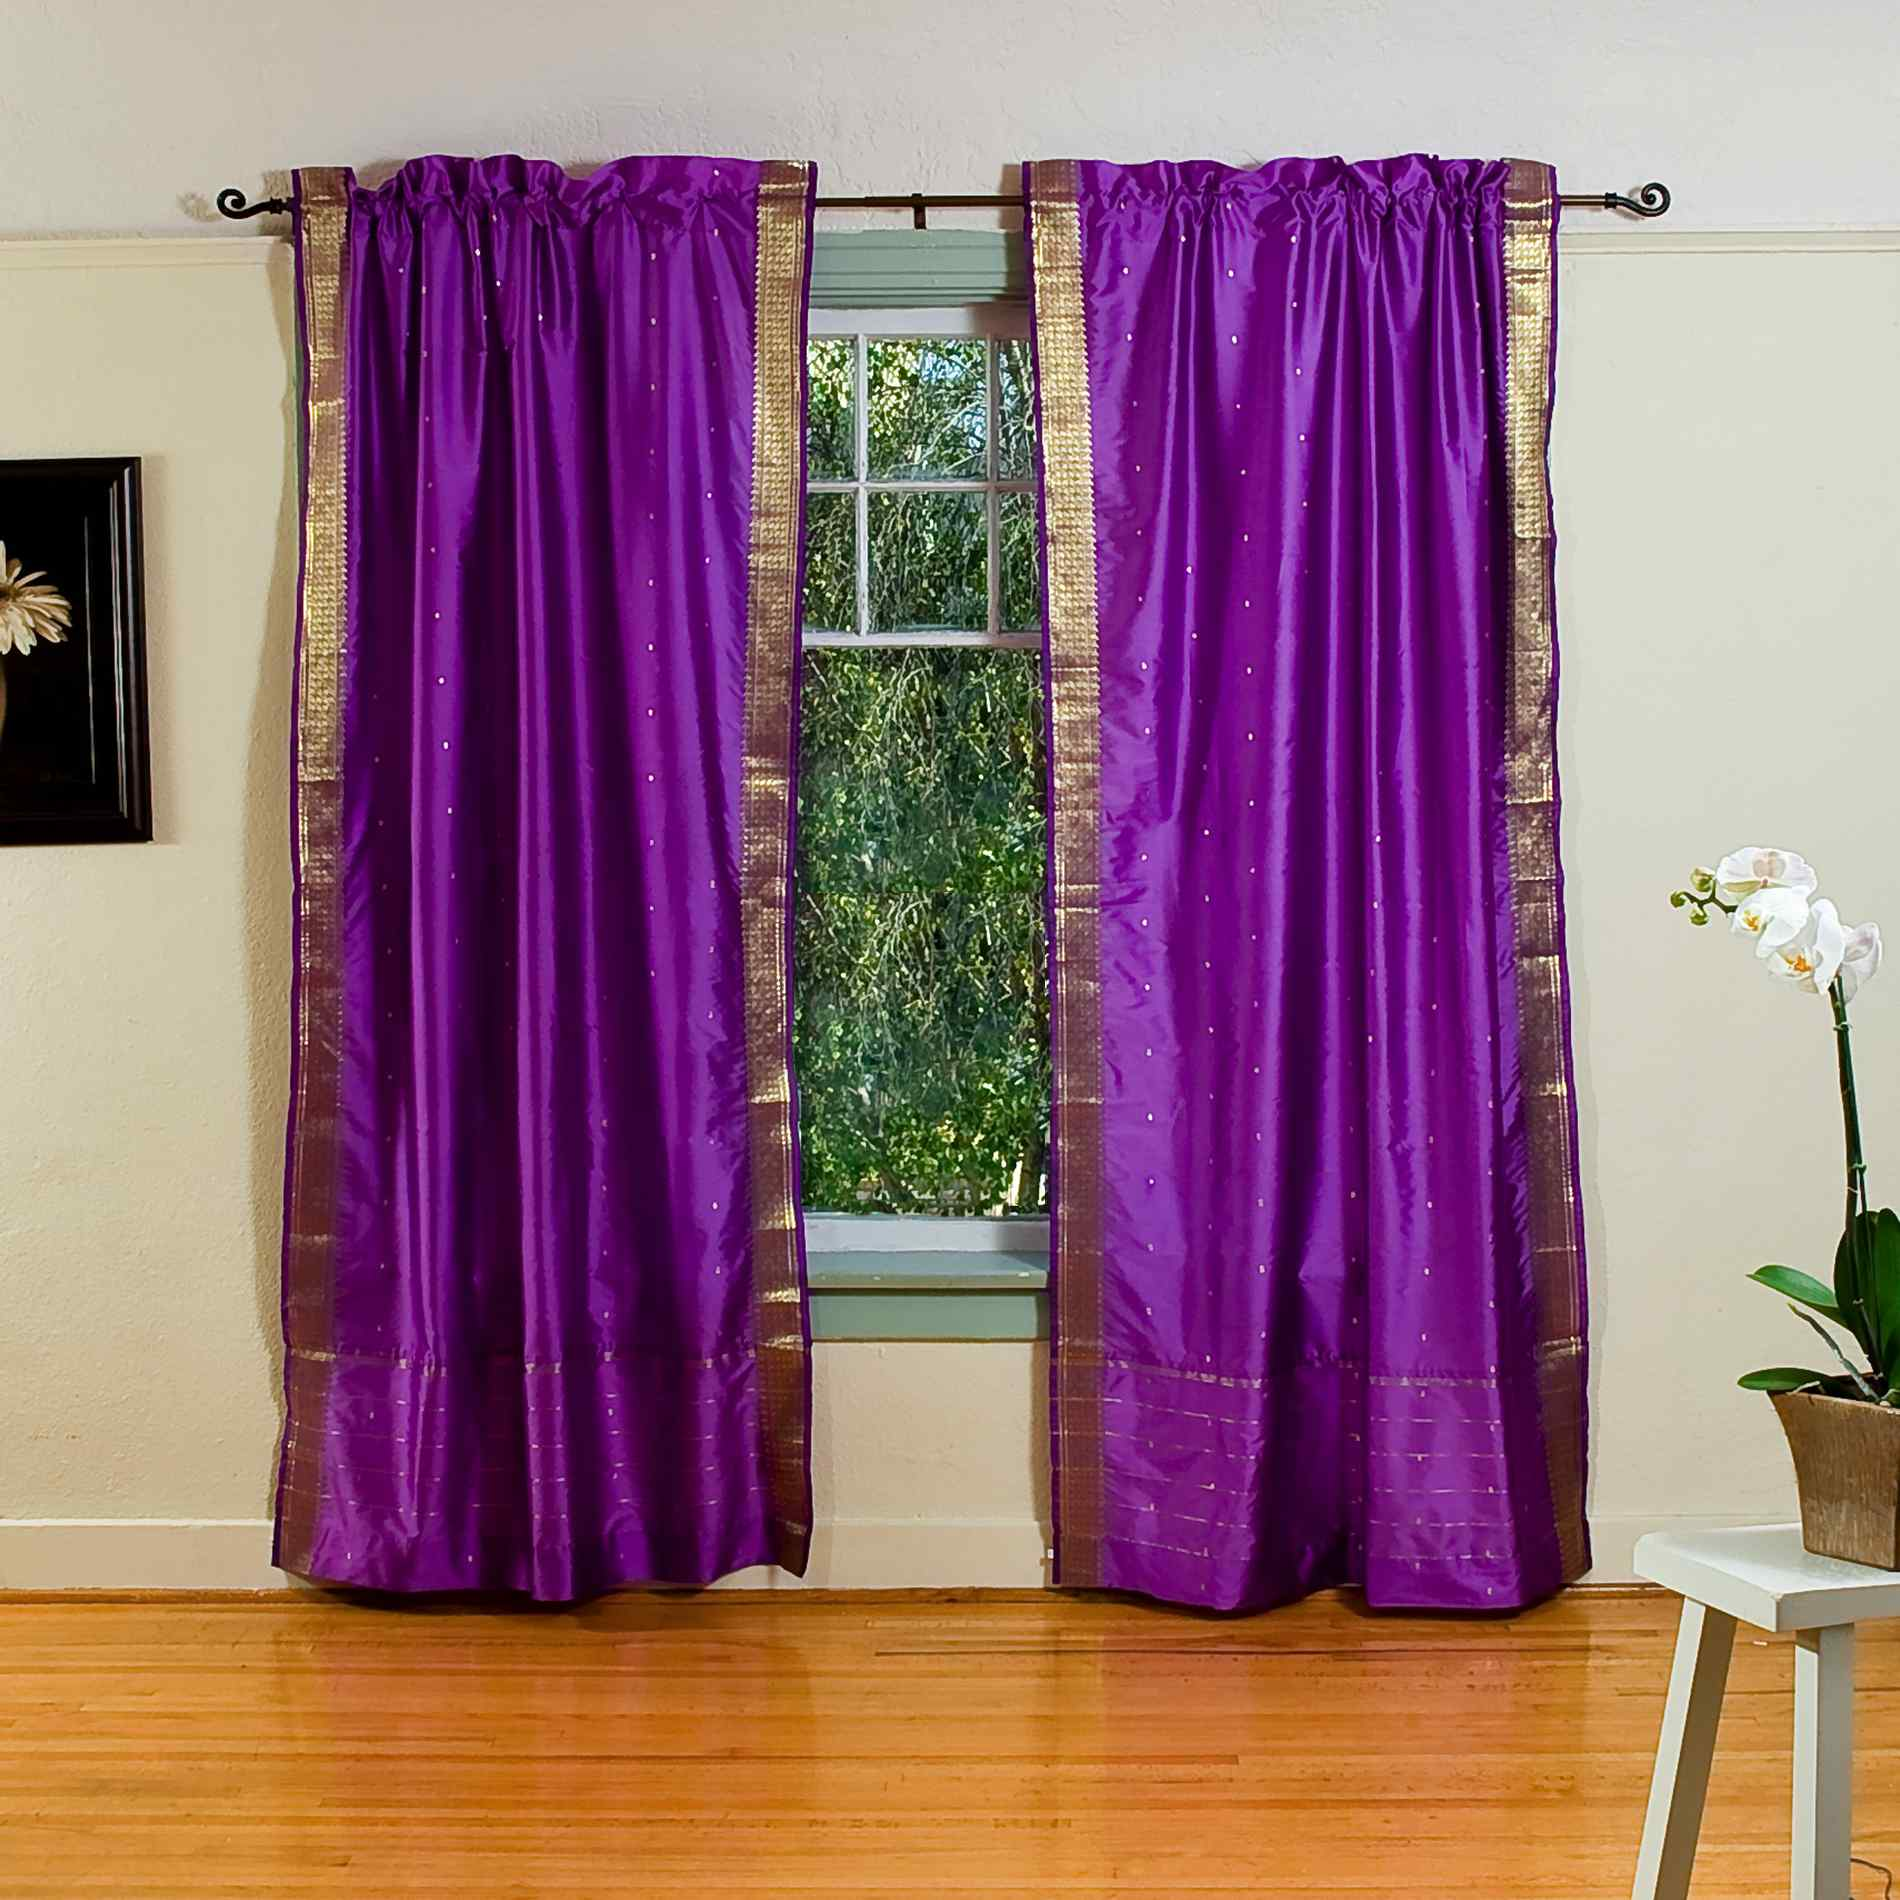 Lavender Sheer Curtains Lavender Curtains Purple Or Pink Sheer Luxury 3 Tiered Ruffle